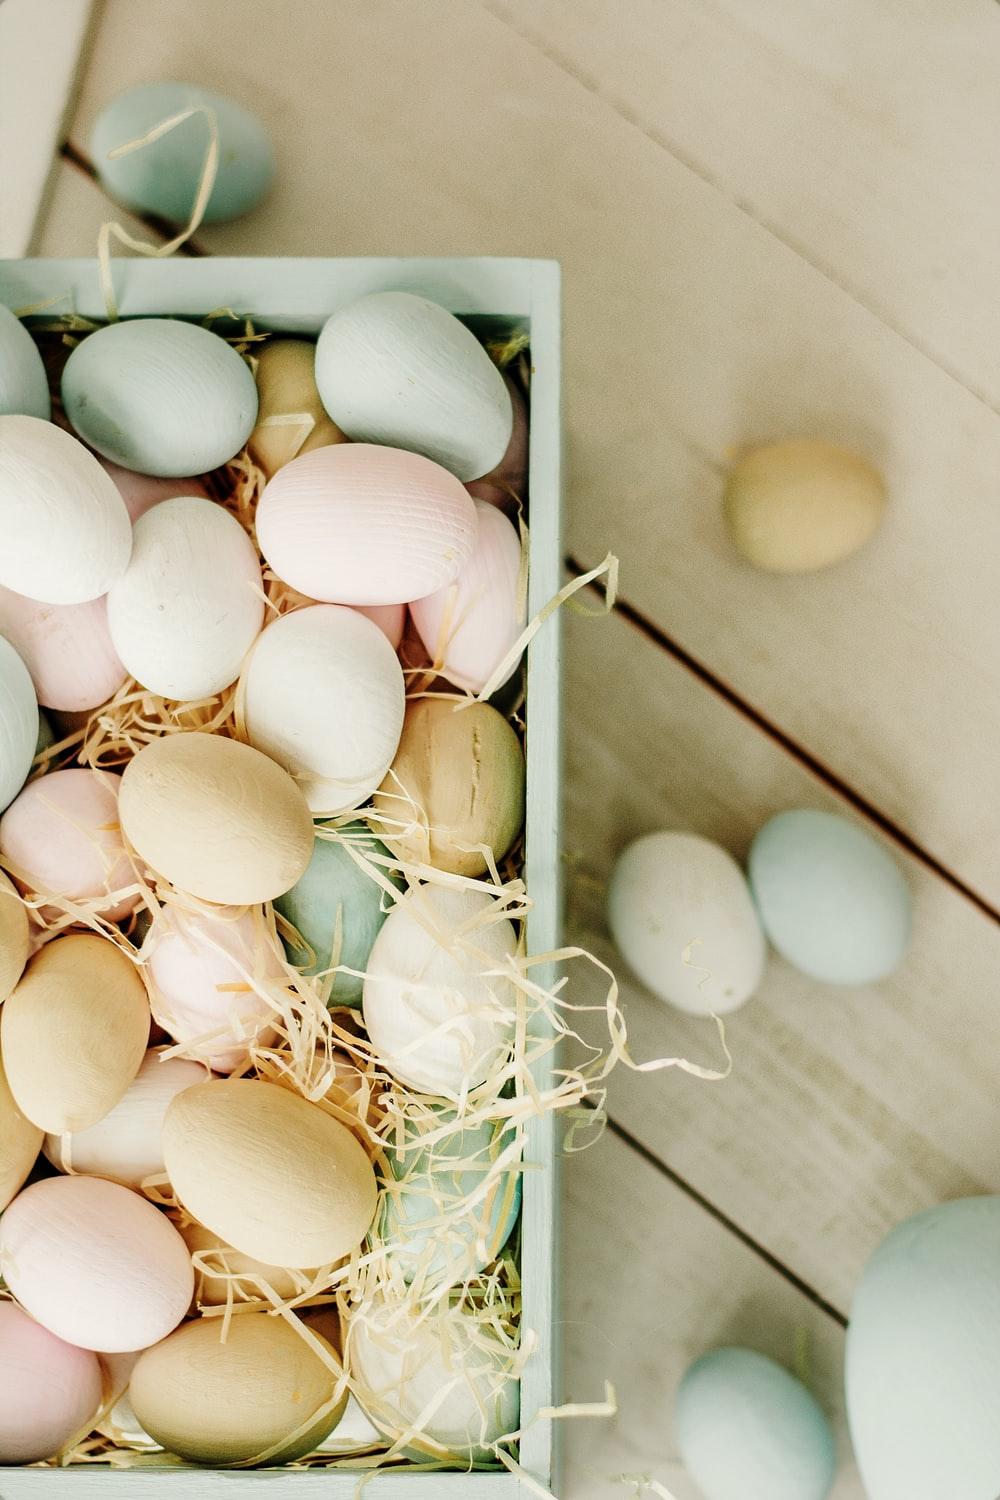 white and brown eggs on white wooden tray